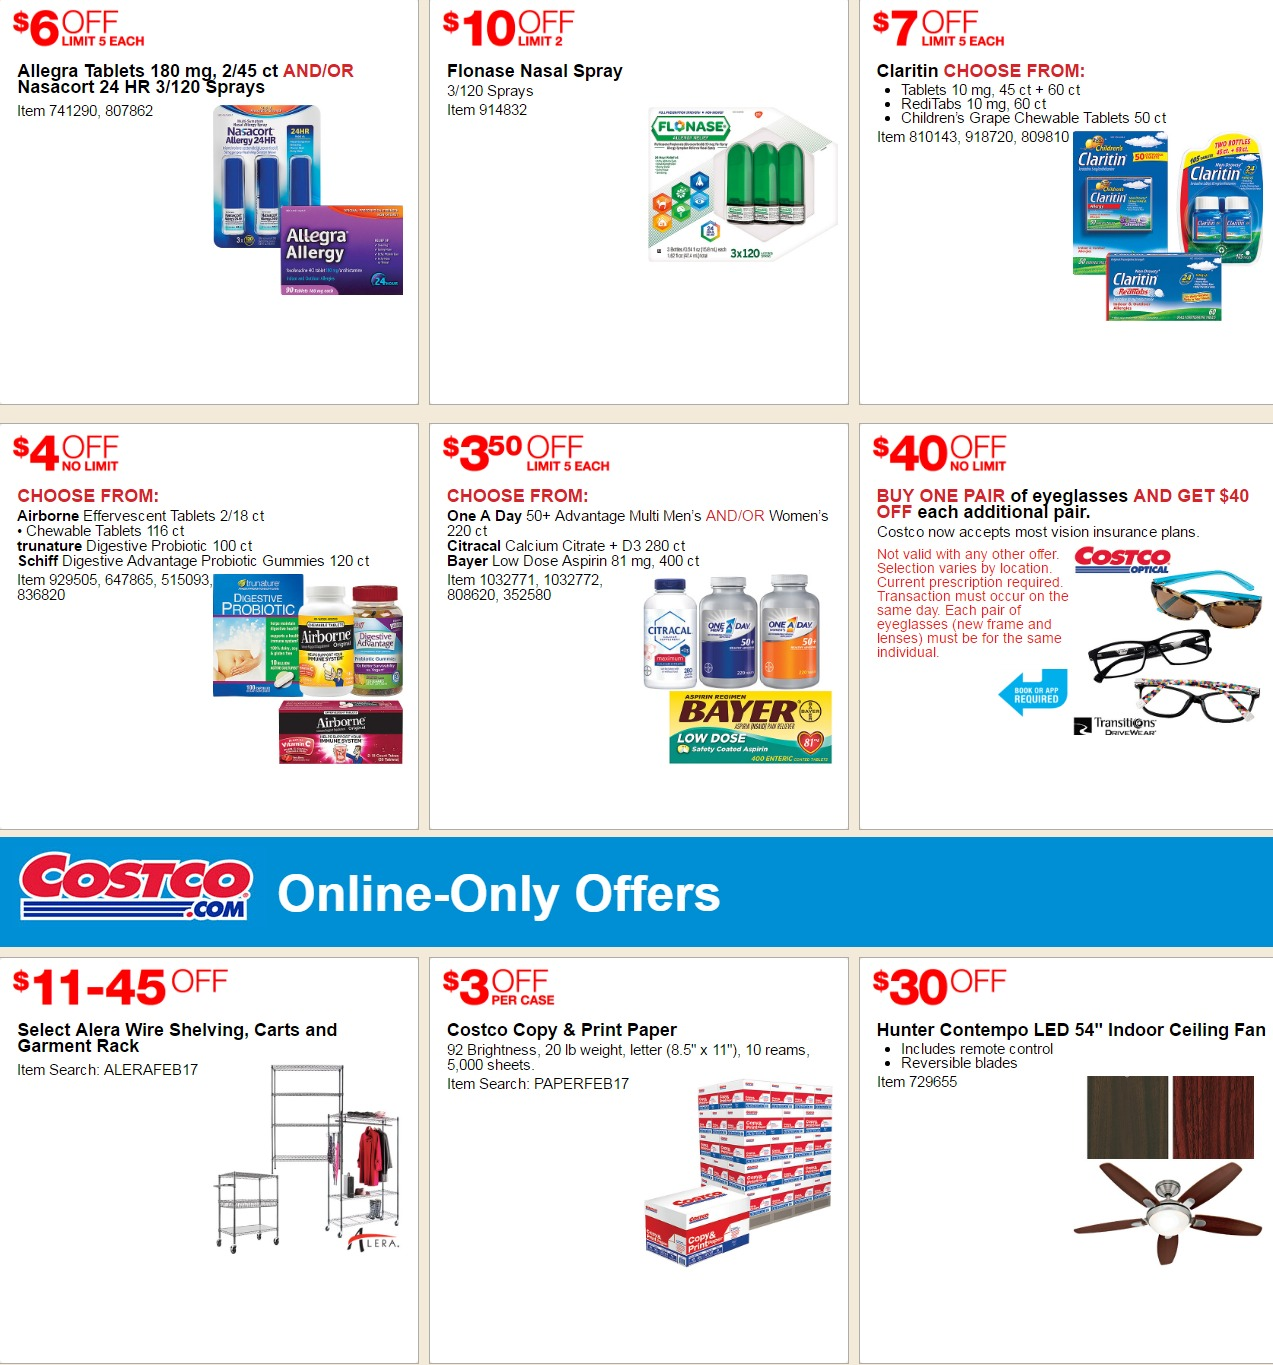 Costco Coupon Offers February 16 March 12 2017